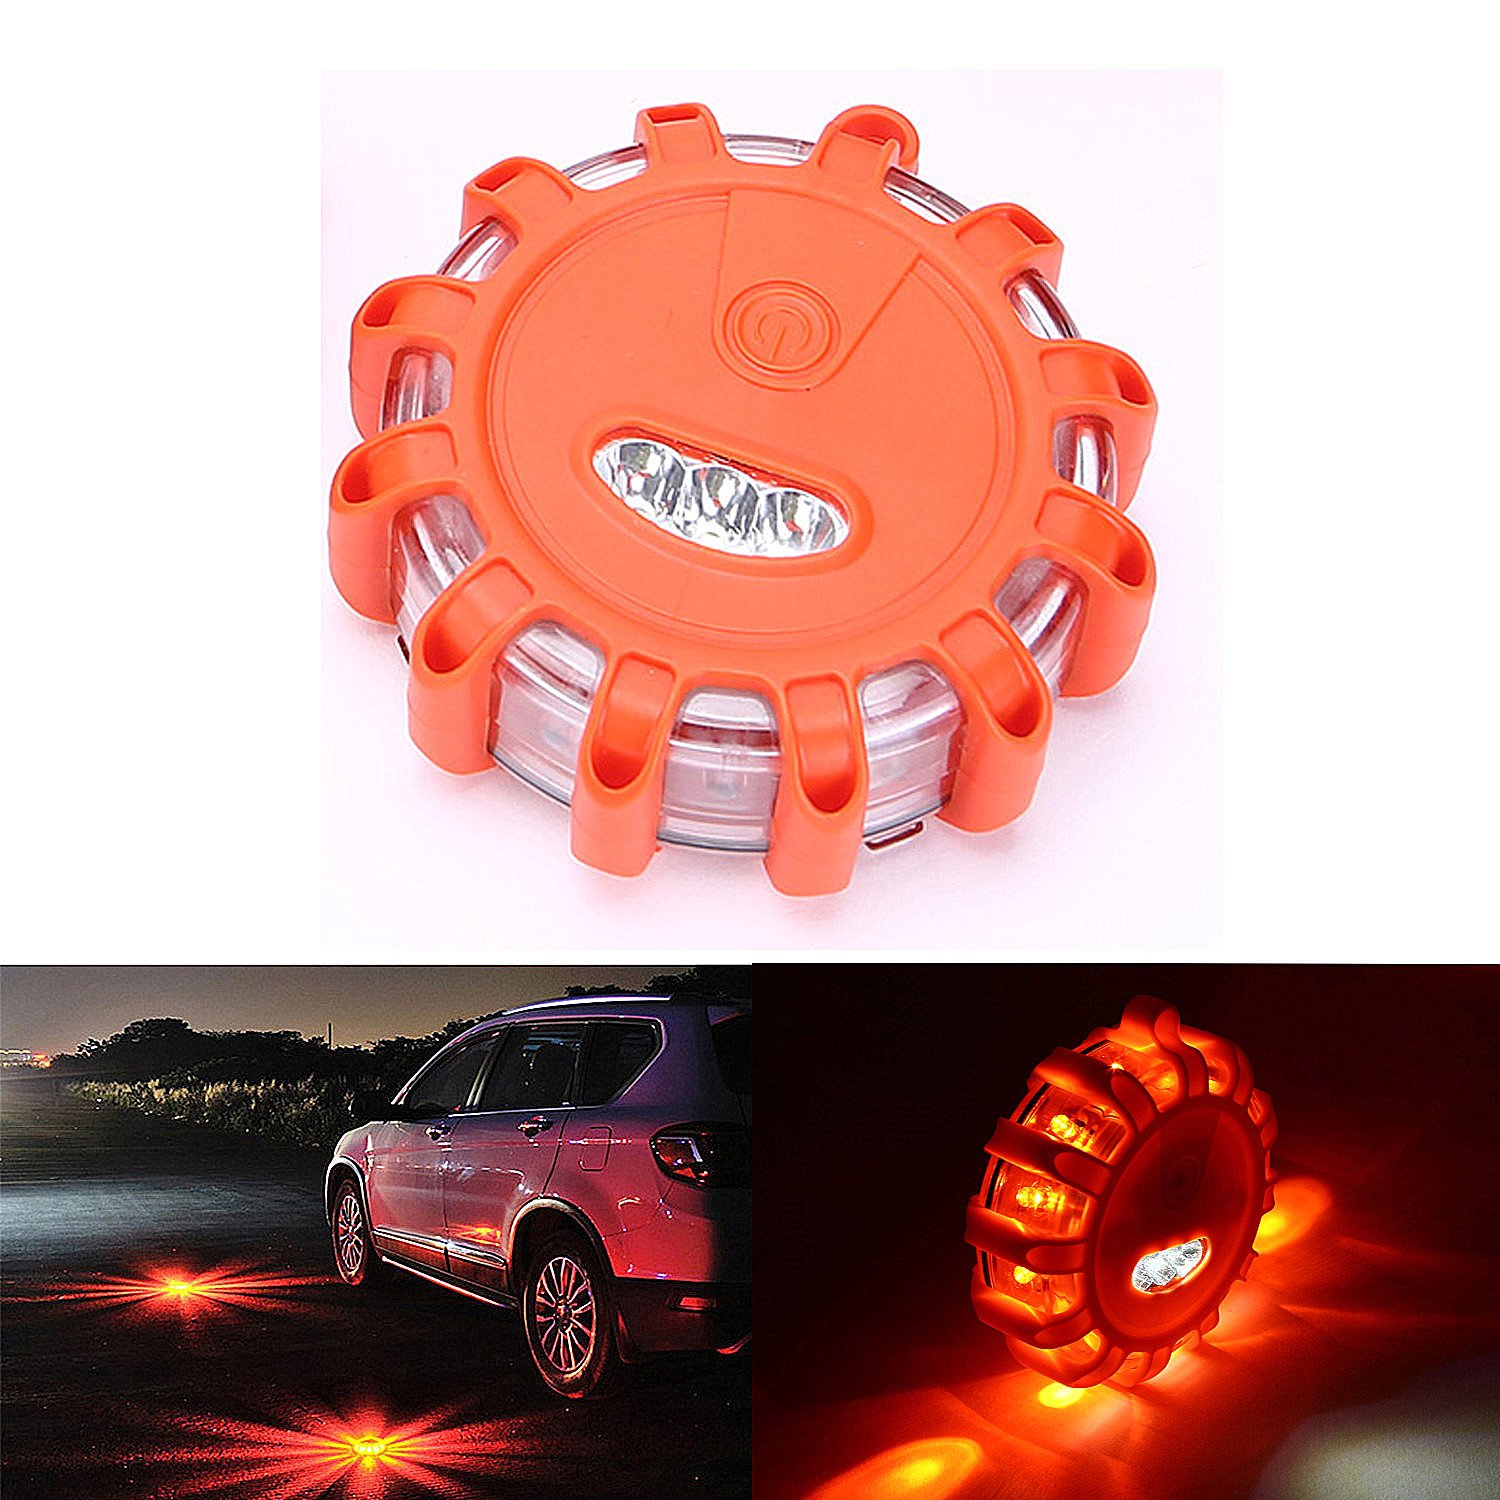 CICMOD Road Flare Flashing Emergency Signal Warning LED Light for Car Truck (Pack of 6)